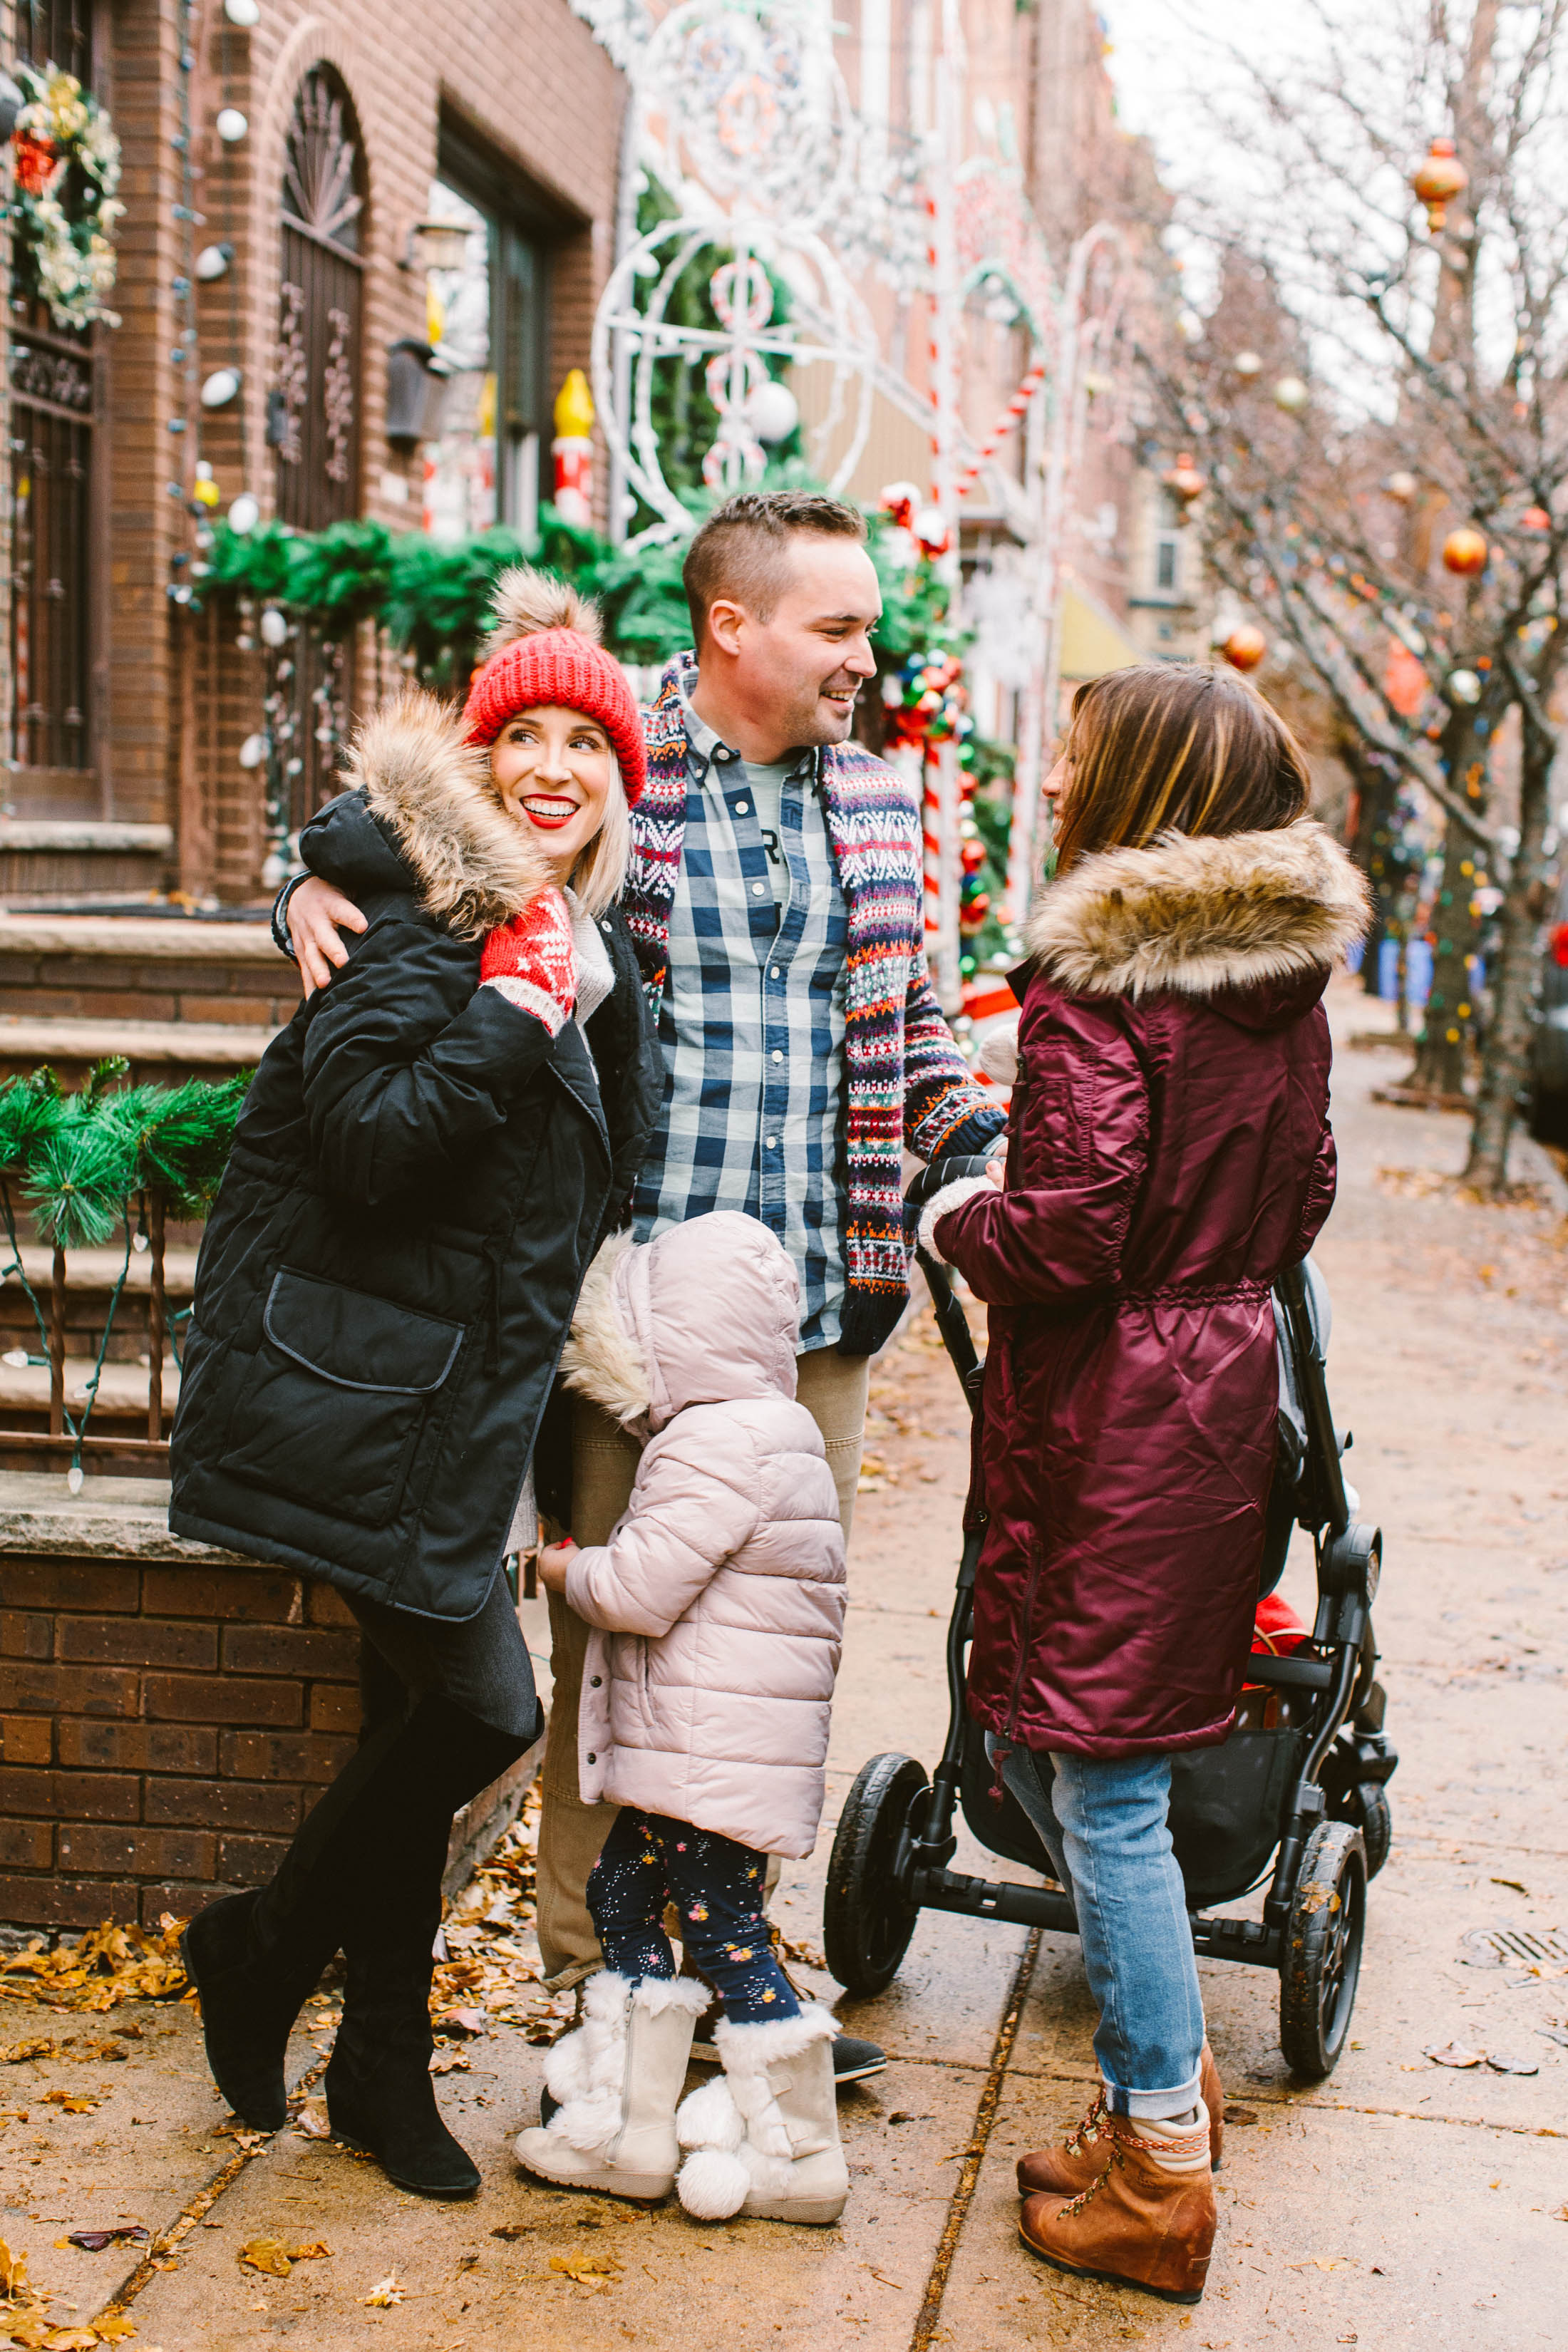 Family and Christmas decorations in South Philly. Check out our super-fun afternoon made better with layers & warm, cute coats. (The wine helped, too).